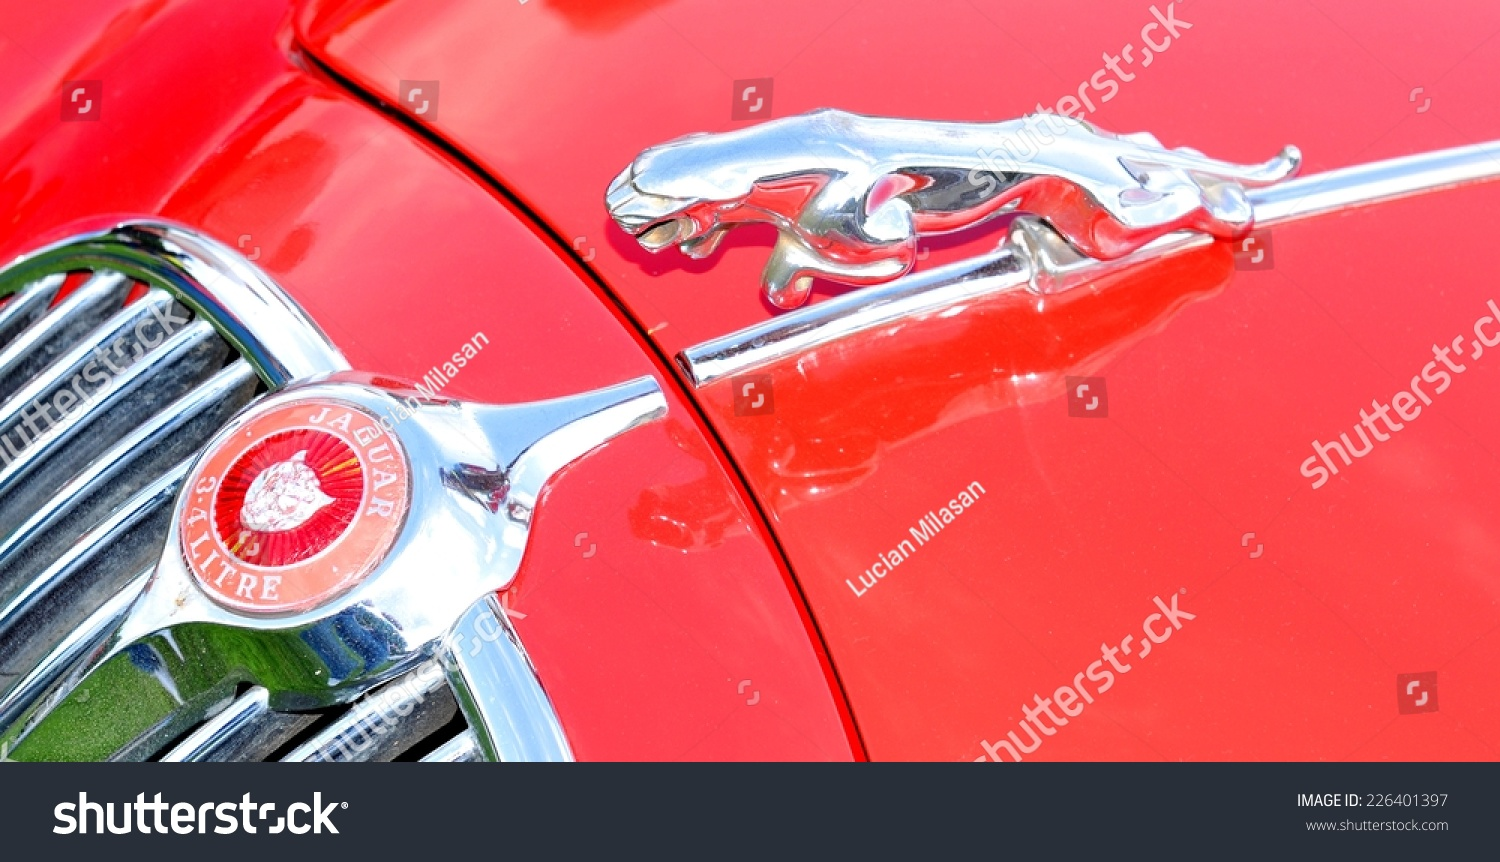 Nottingham Uk June 1 2014 Detail Stock Photo 226401397 - Shutterstock